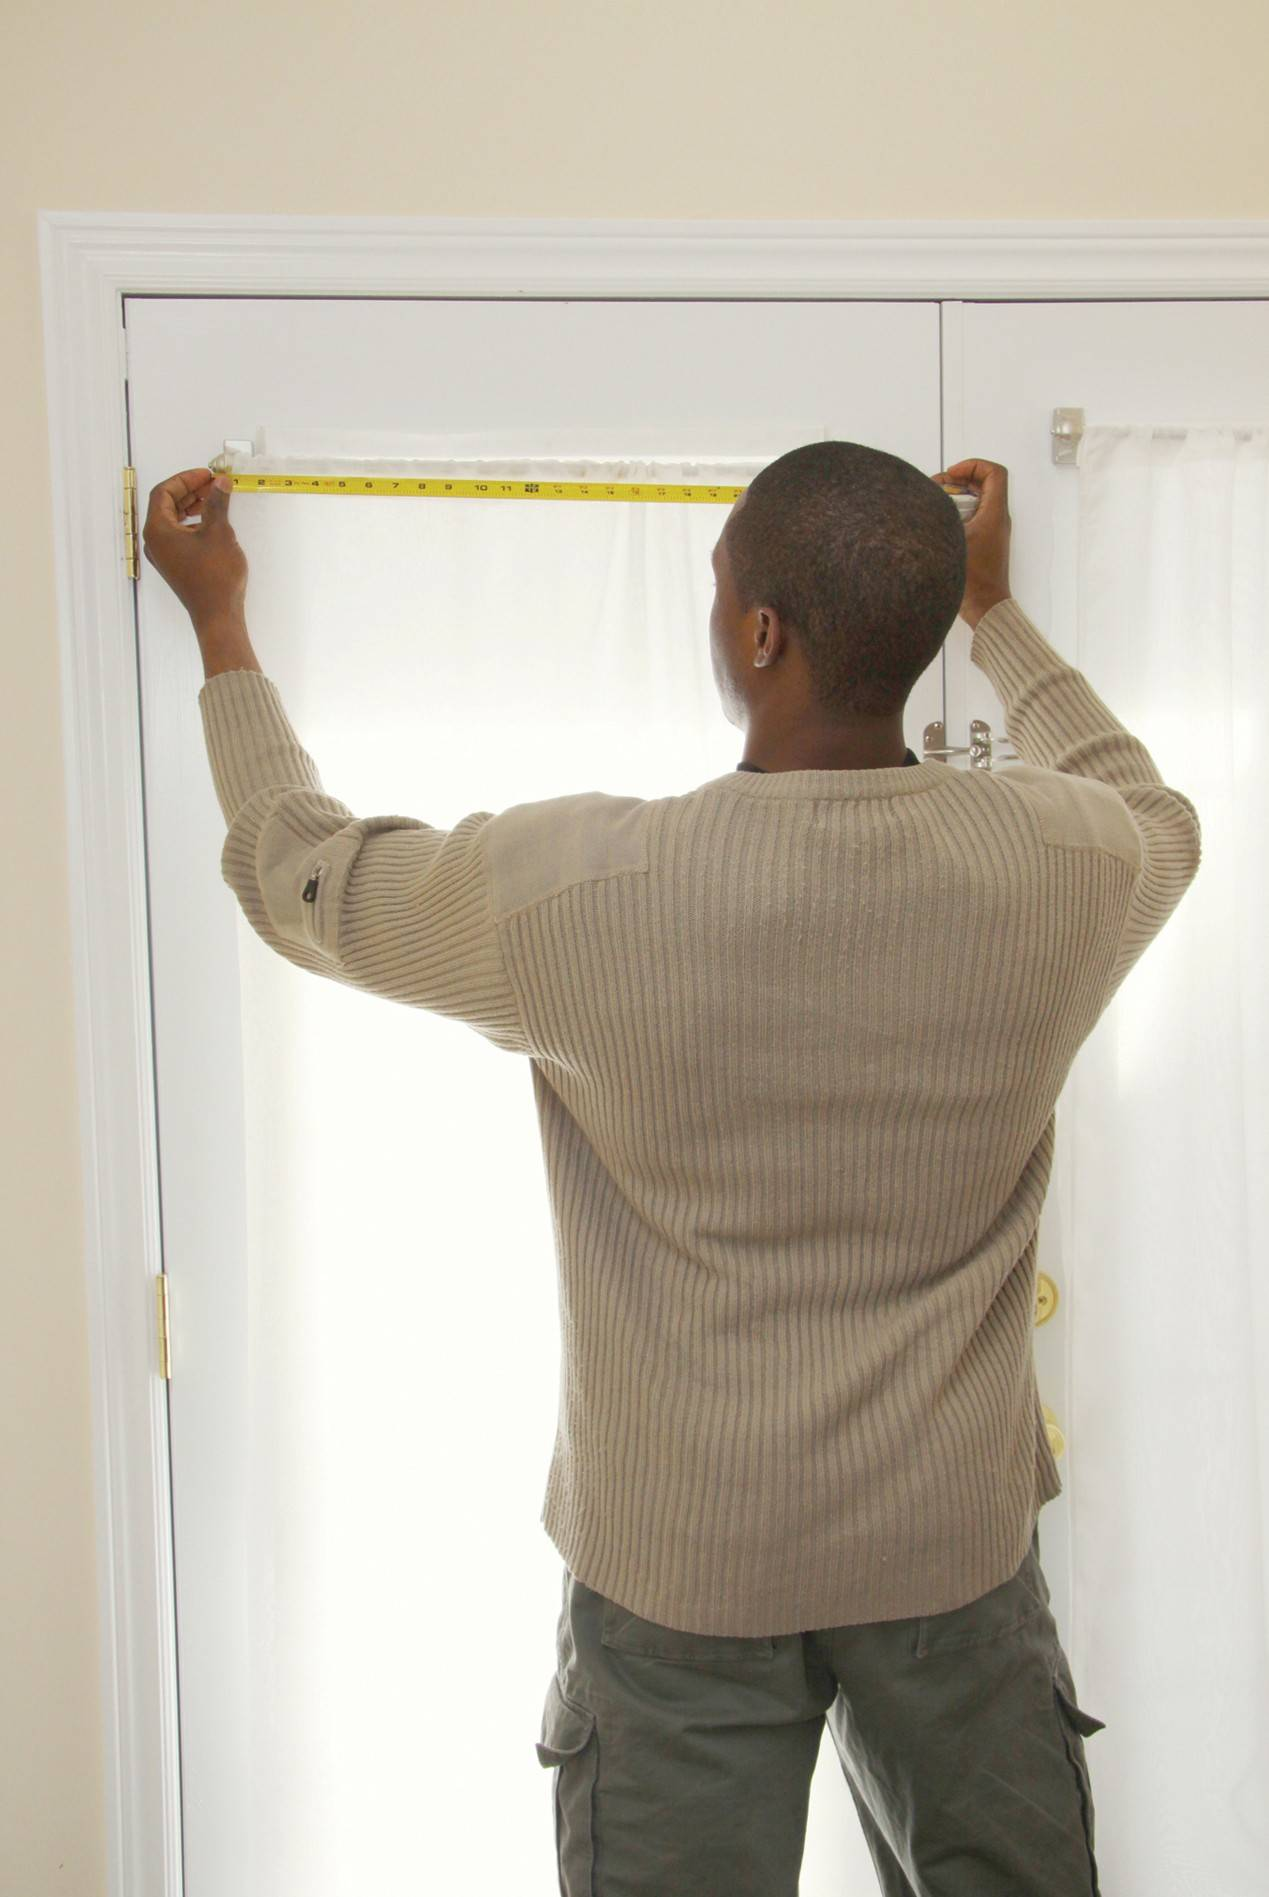 Double-checking measurements is one way to avoid potentially costly home improvement project mistakes.